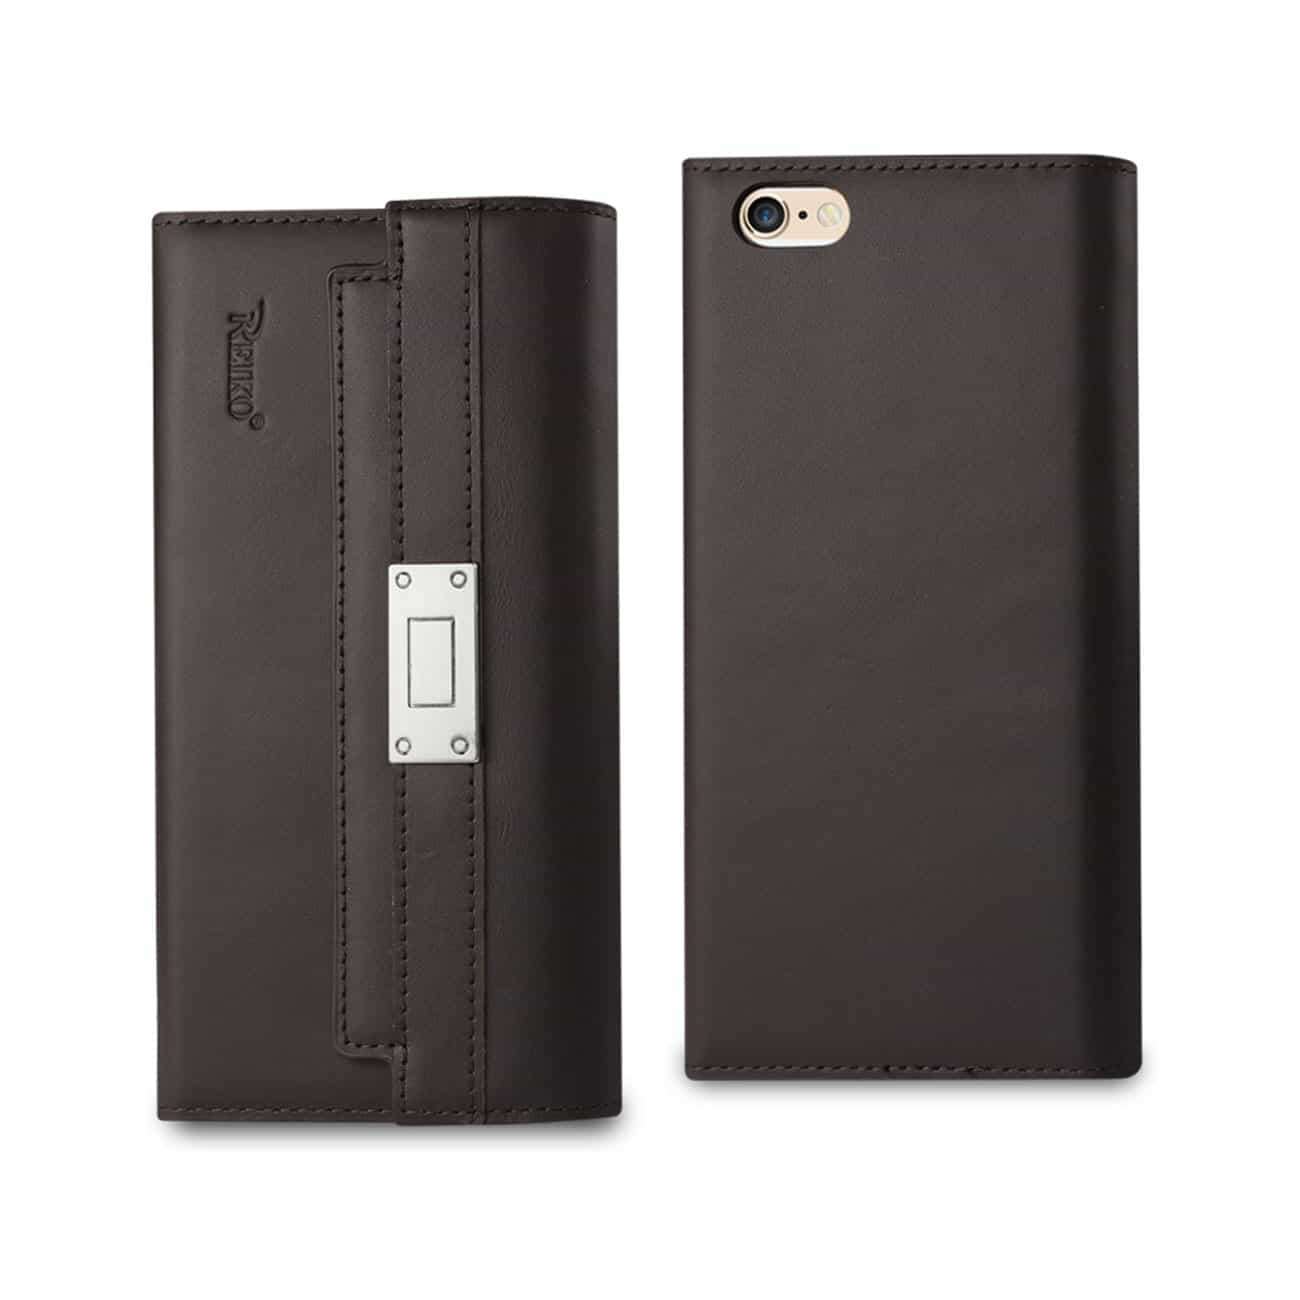 IPHONE 6S GENUINE LEATHER RFID WALLET CASE AND METAL BUCKLE BELT IN UMBER